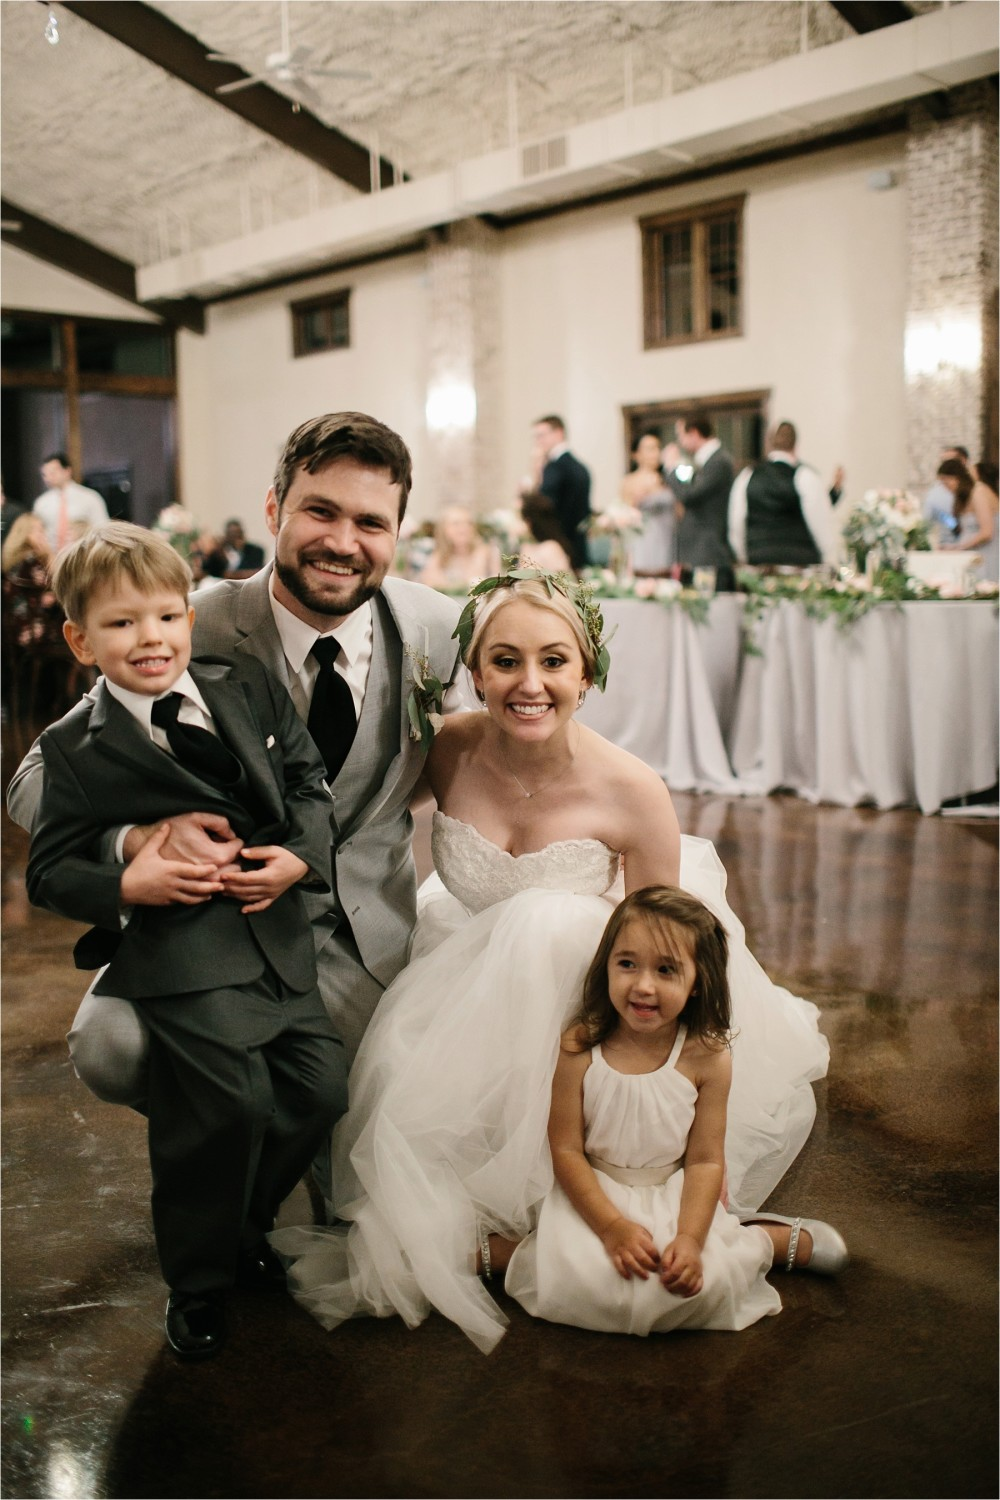 brad-lara-__-a-grey-and-blush-pink-intimate-wedding-at-hidden-waters-event-center-in-waxahachie-tx-by-north-texas-wedding-photographer-rachel-meagan-photography-_-084